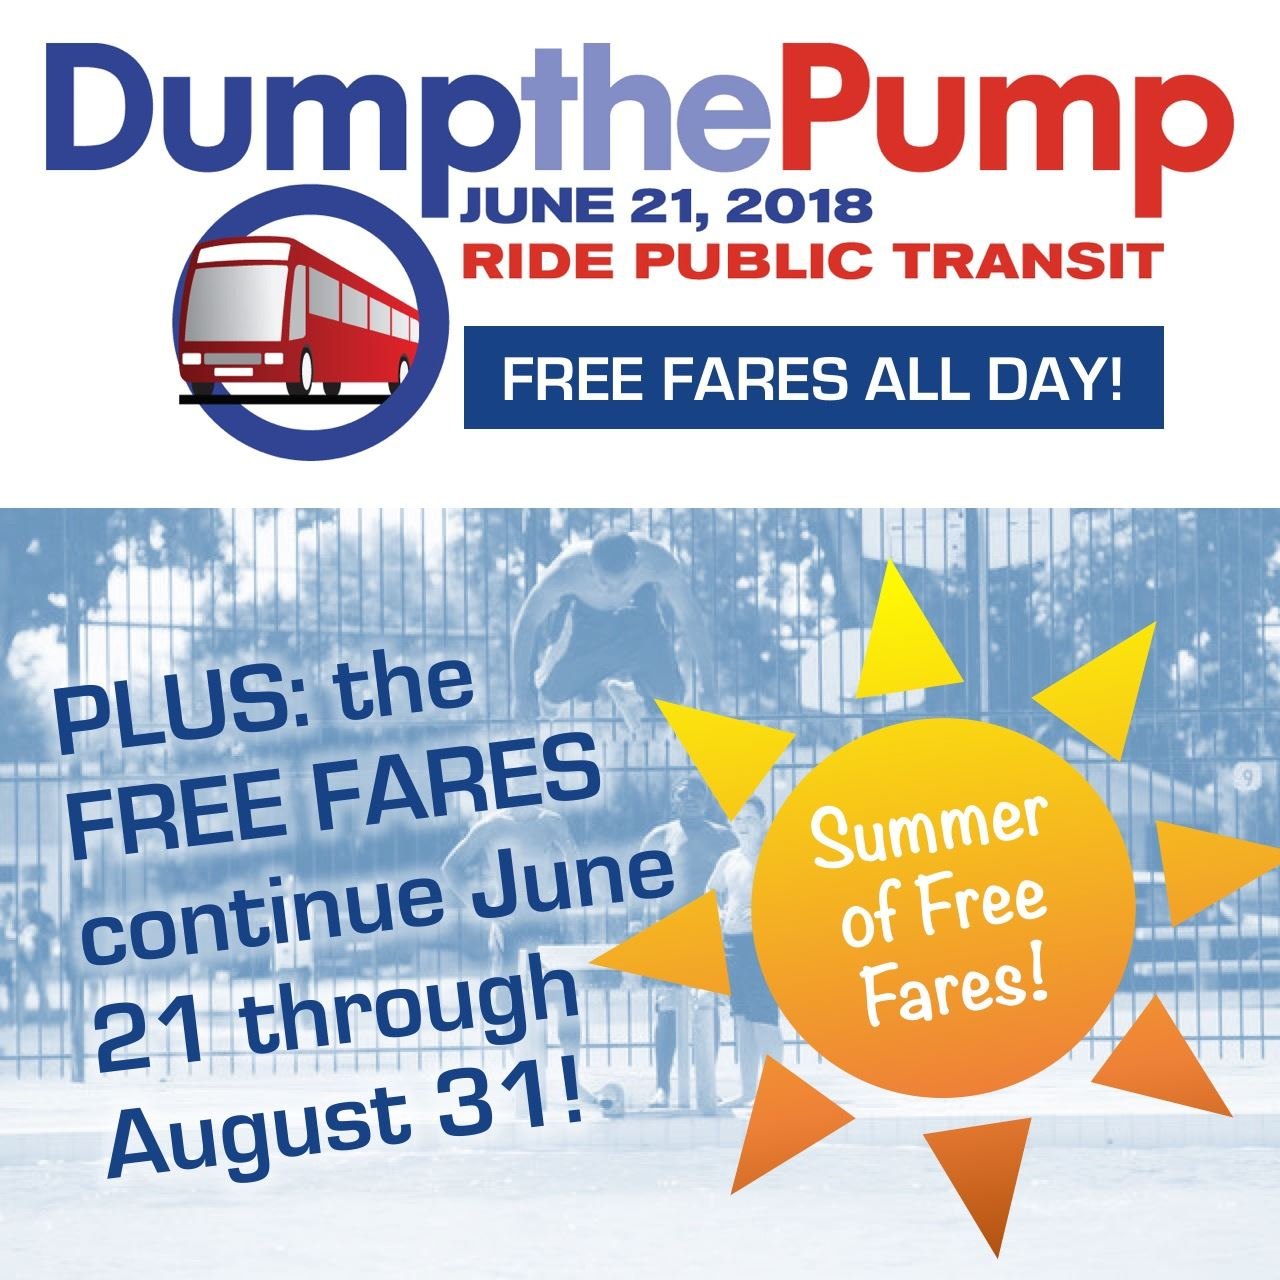 Dump the Pump 2018 and FREE FARES